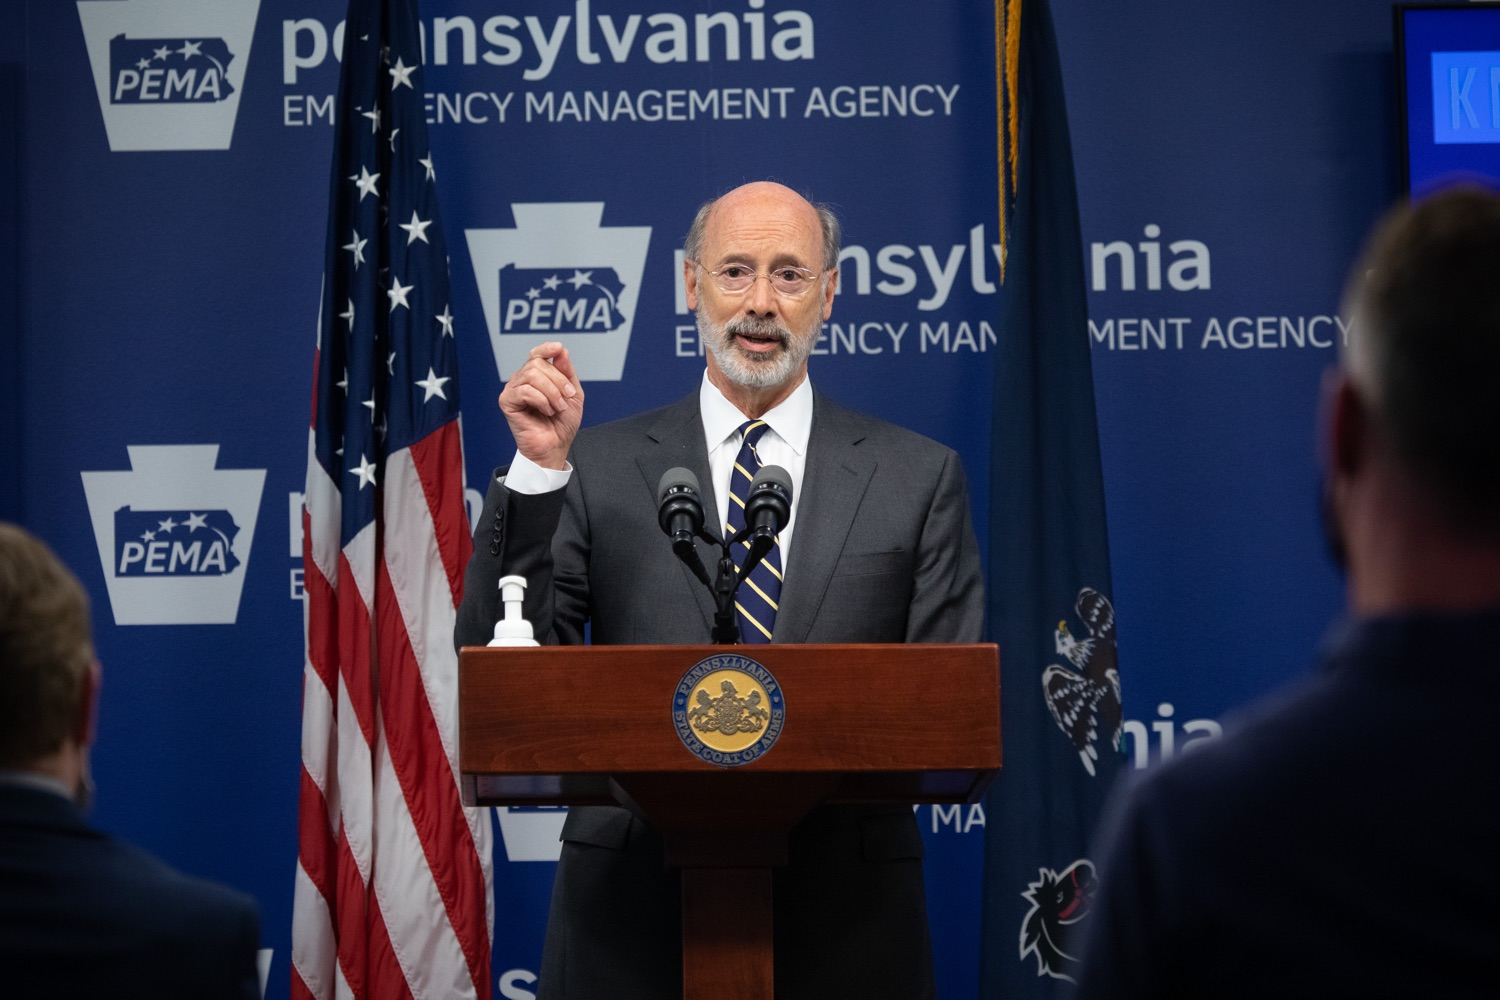 """<a href=""""https://filesource.wostreaming.net/commonwealthofpa/photo/18165_GOV_covid_mitigation_dz_01.jpg"""" target=""""_blank"""">⇣Download Photo<br></a>Pennsylvania Governor Tom Wolf speaking with the press. Governor Tom Wolf and Sec. of Health Dr. Rachel Levine today signed new orders for targeted mitigation efforts in response to the recent rise in COVID cases, primarily in southwest Pennsylvania, but also in other counties in the state, influencing the decision for statewide mitigation efforts for bars and restaurants, gatherings and telework. The new orders take effect at 12:01 a.m., Thursday, July 16, 2020.  Harrisburg, - July 15, 2020"""